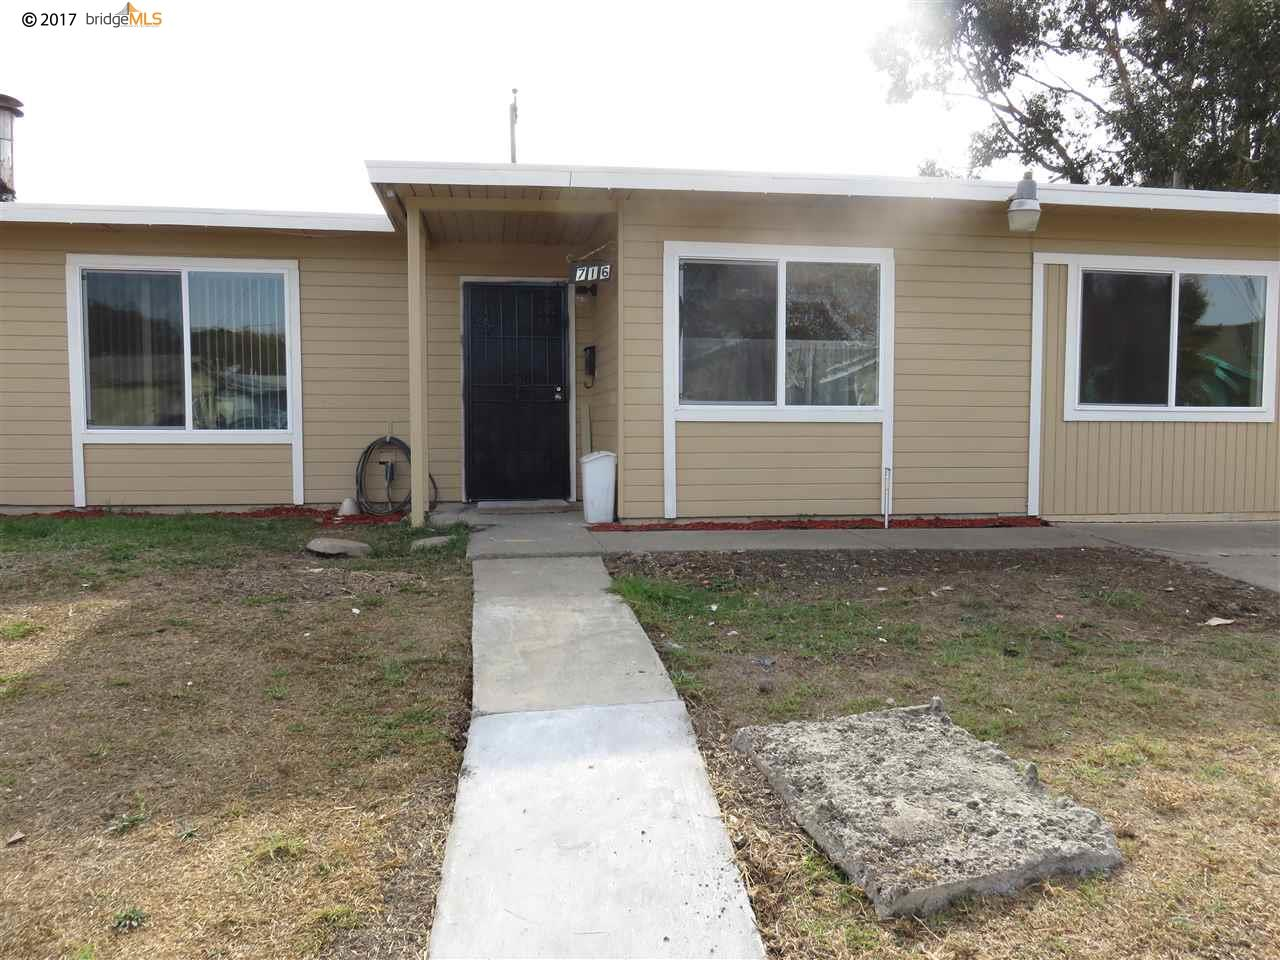 716 HARRISON DR, RICHMOND, CA 94806